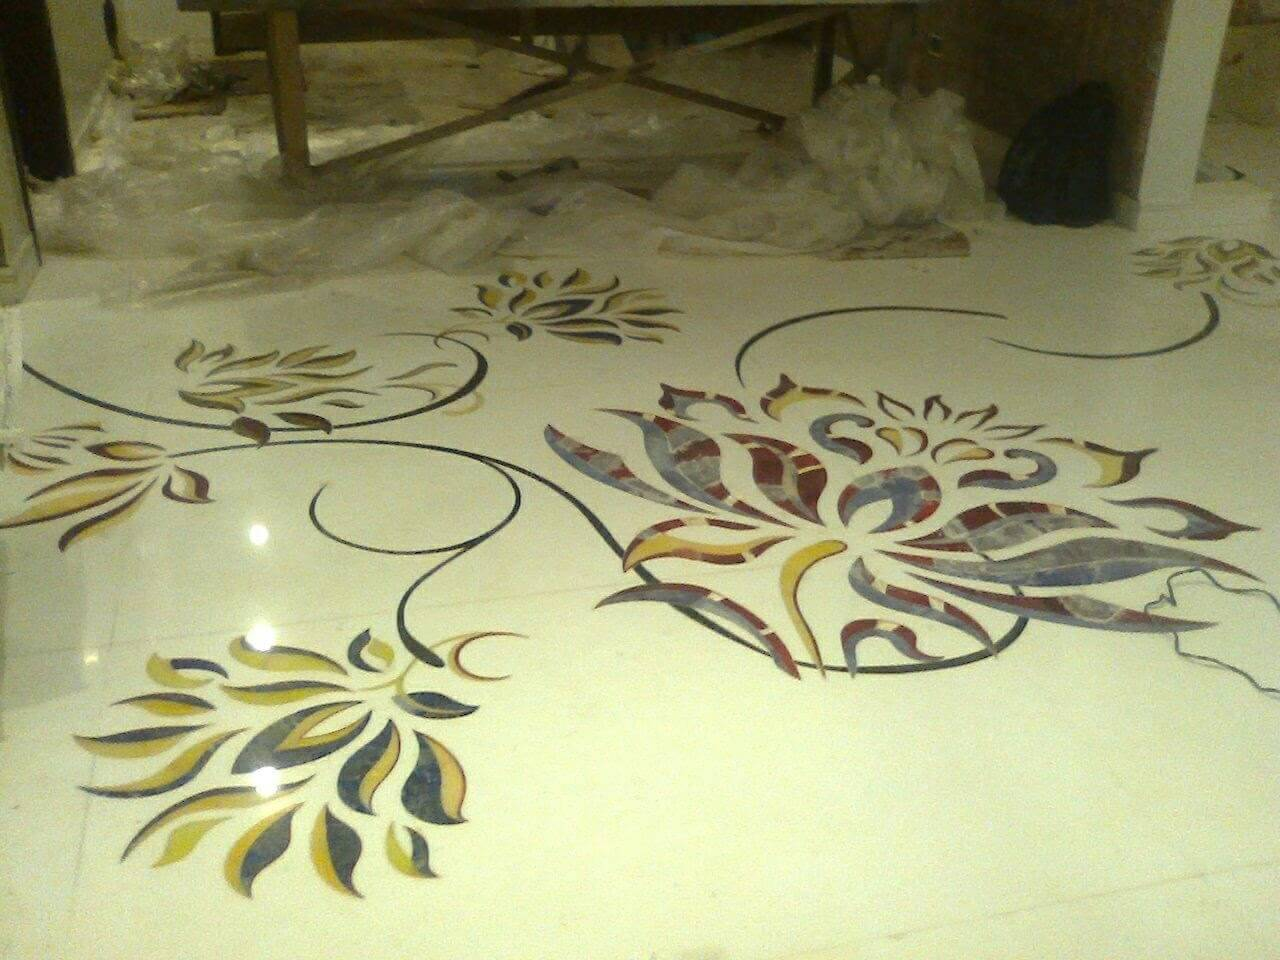 Marble Inlay Flooring Designs : Most trending marble inlay flooring designs or patterns